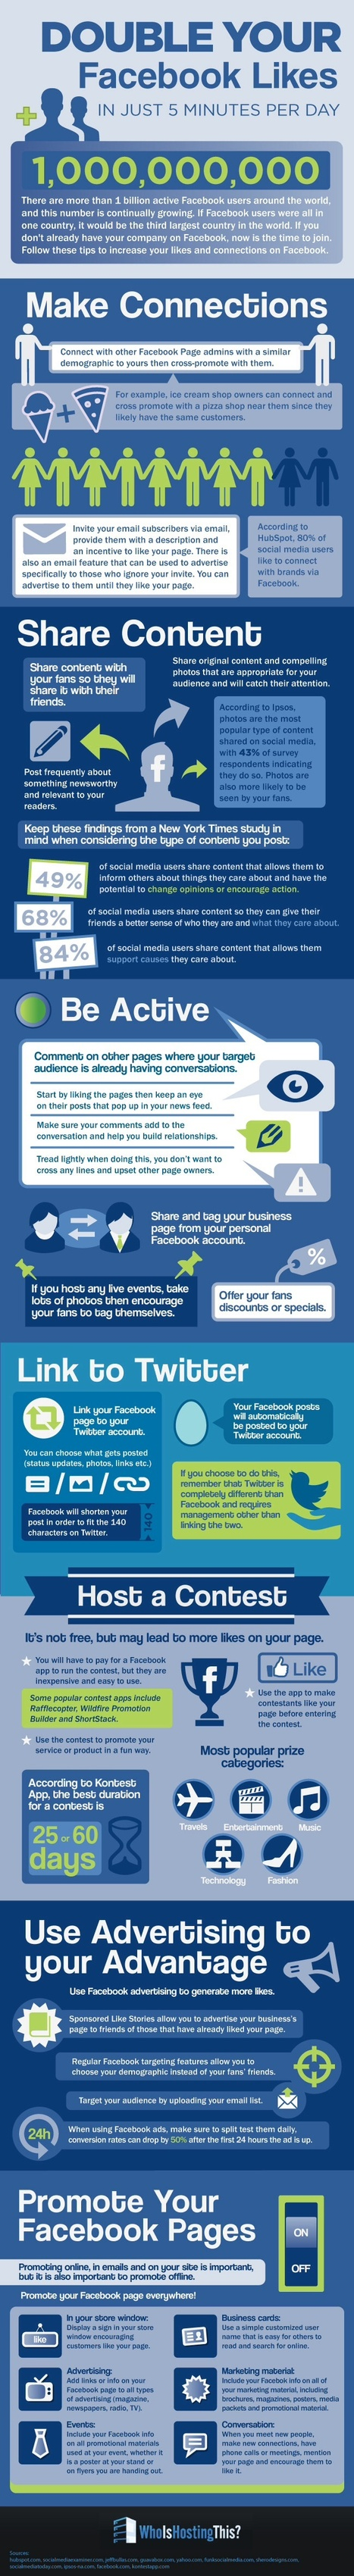 [Infographic] Double Your Facebook Likes in Just 5 Minutes Per Day | MarketingHits | Scoop.it